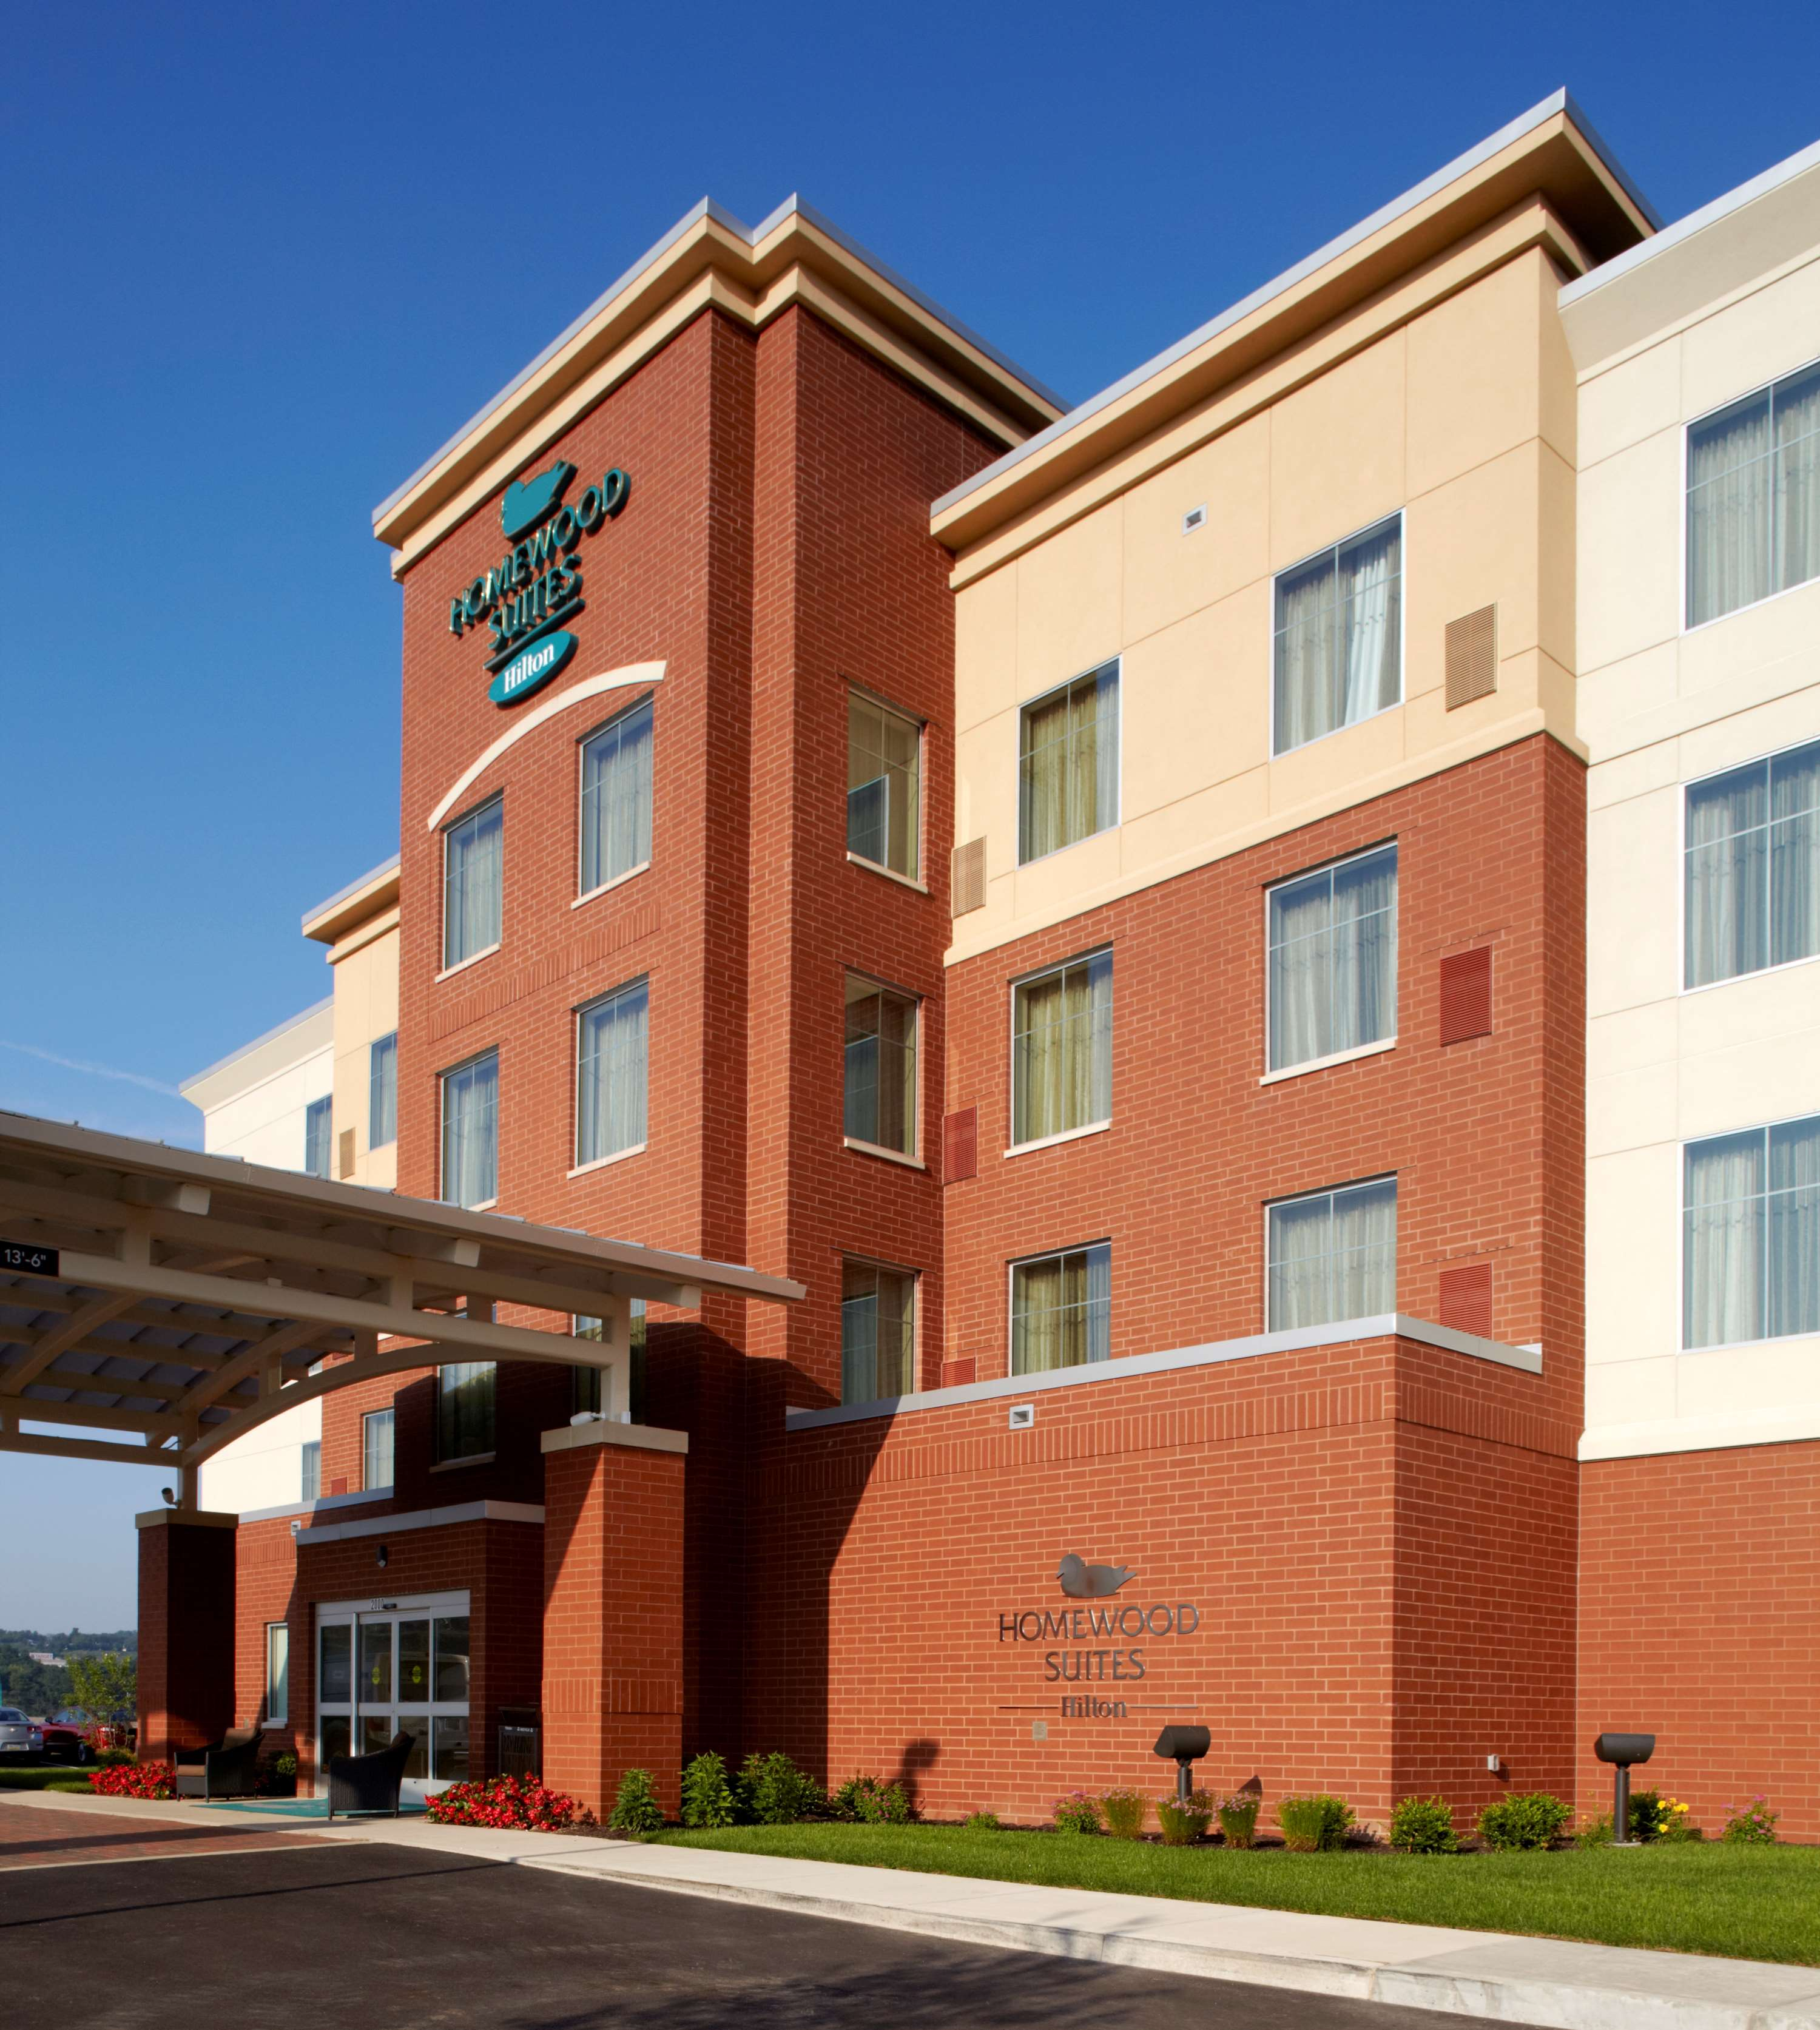 Homewood Suites by Hilton Pittsburgh Airport Robinson Mall Area PA image 2